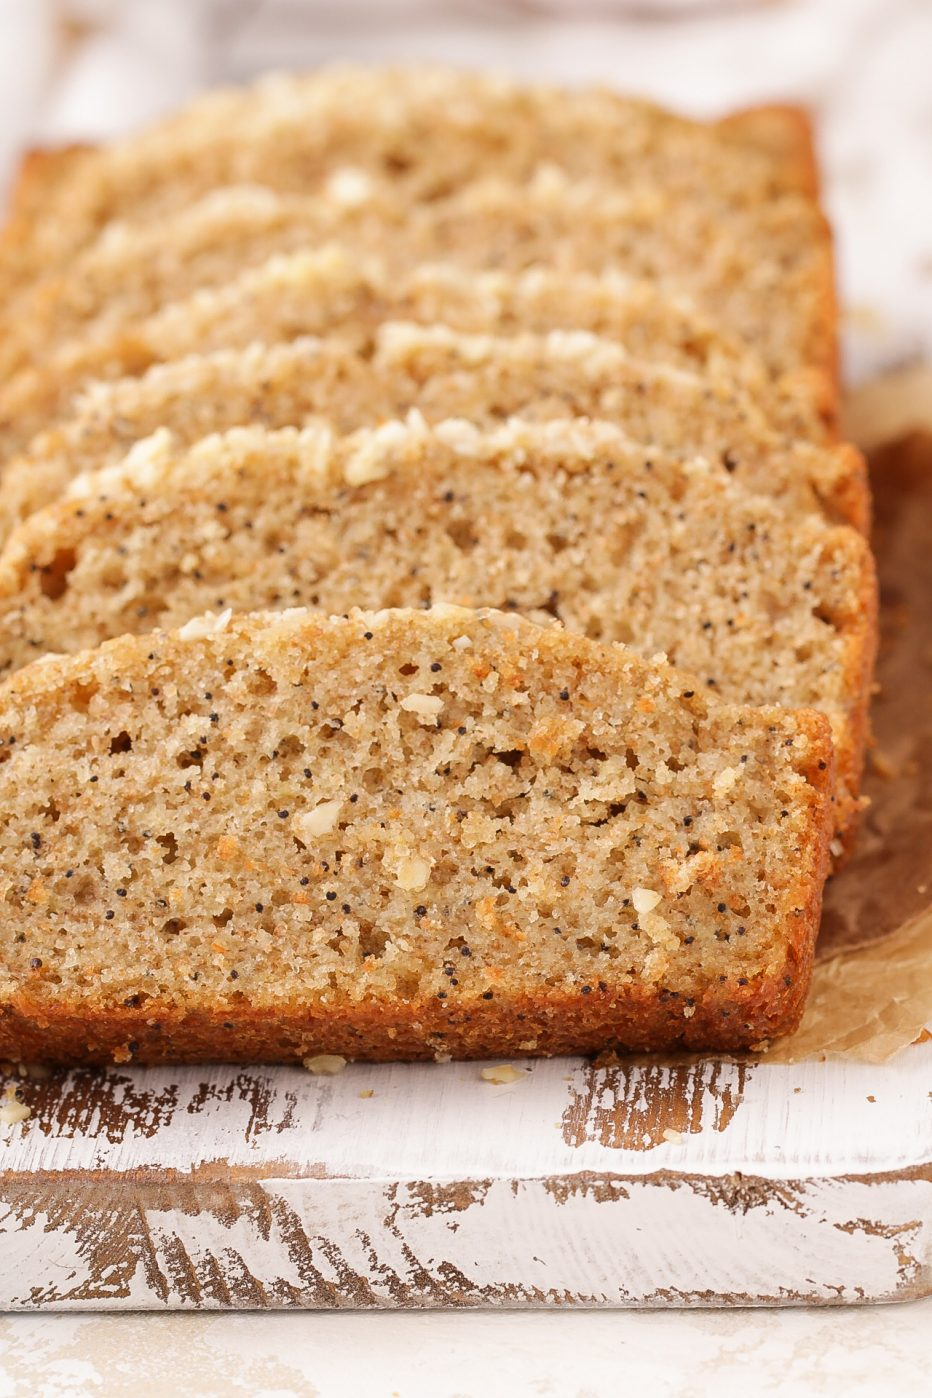 Healthy Baking Recipes for Beginners